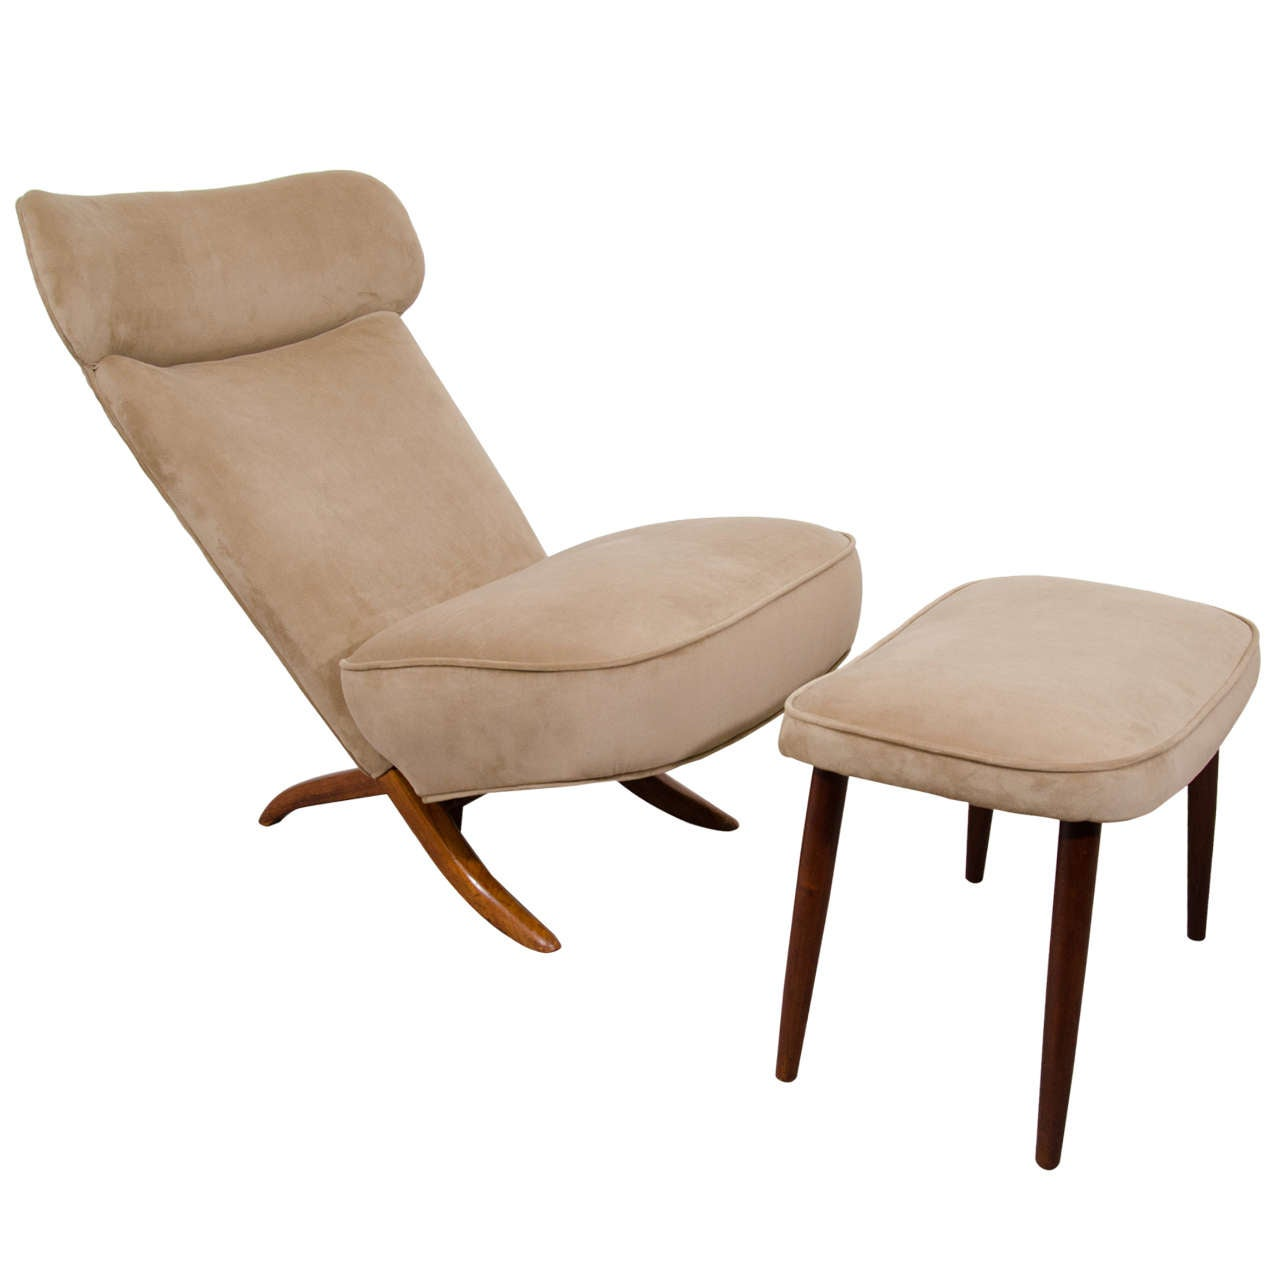 "Mid Century Chair And Ottoman: Mid Century ""Congo"" Chair And Ottoman By Theo Ruth At 1stdibs"